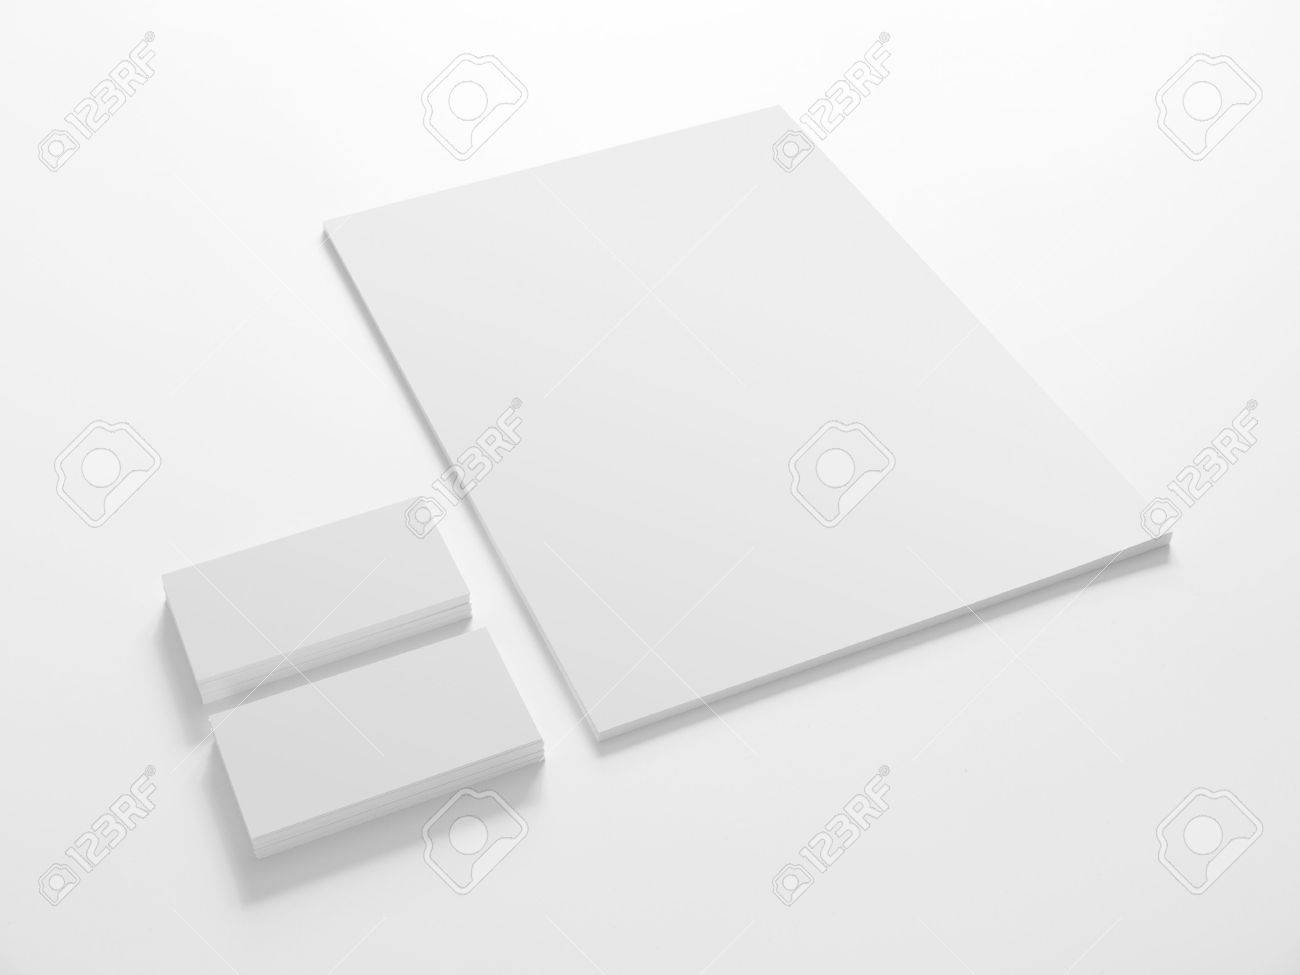 Business Cards And A Paper Isolated On White. Stationery Corporate ...